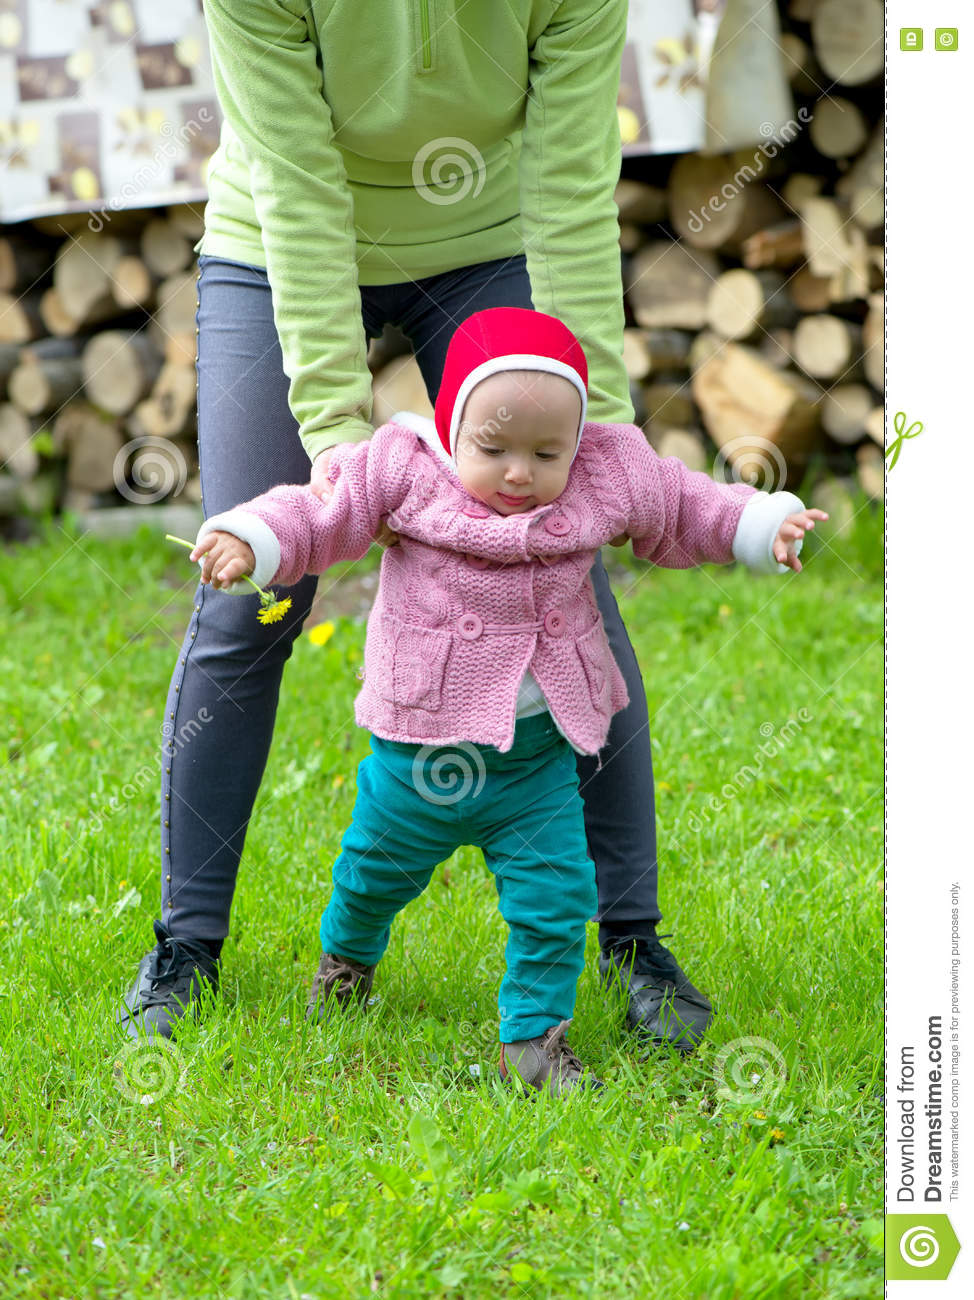 How to Teach a Baby to Walk When it is Time?